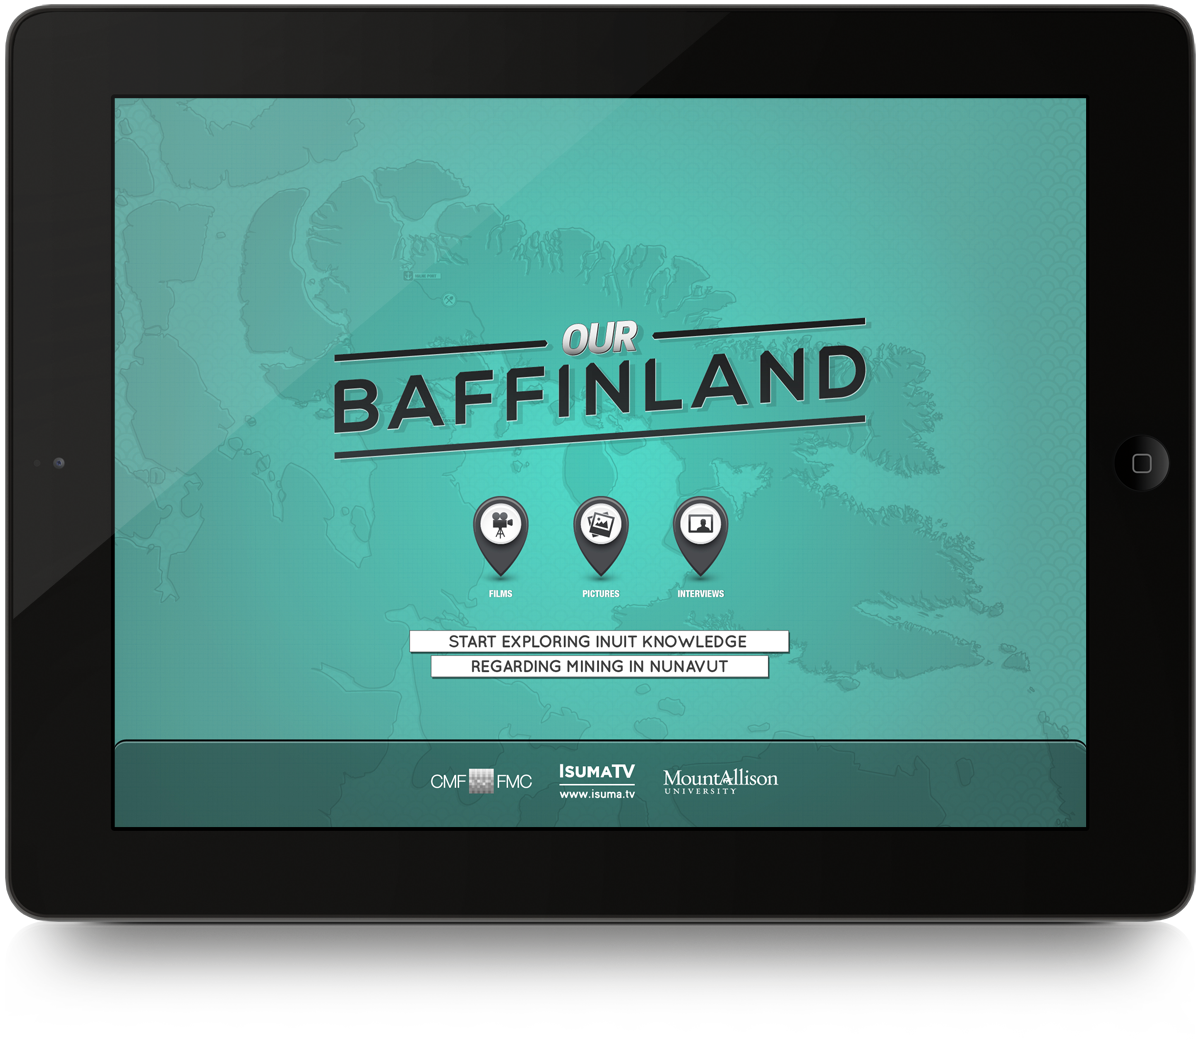 Our Baffinland / Baffin Island Interactive Map